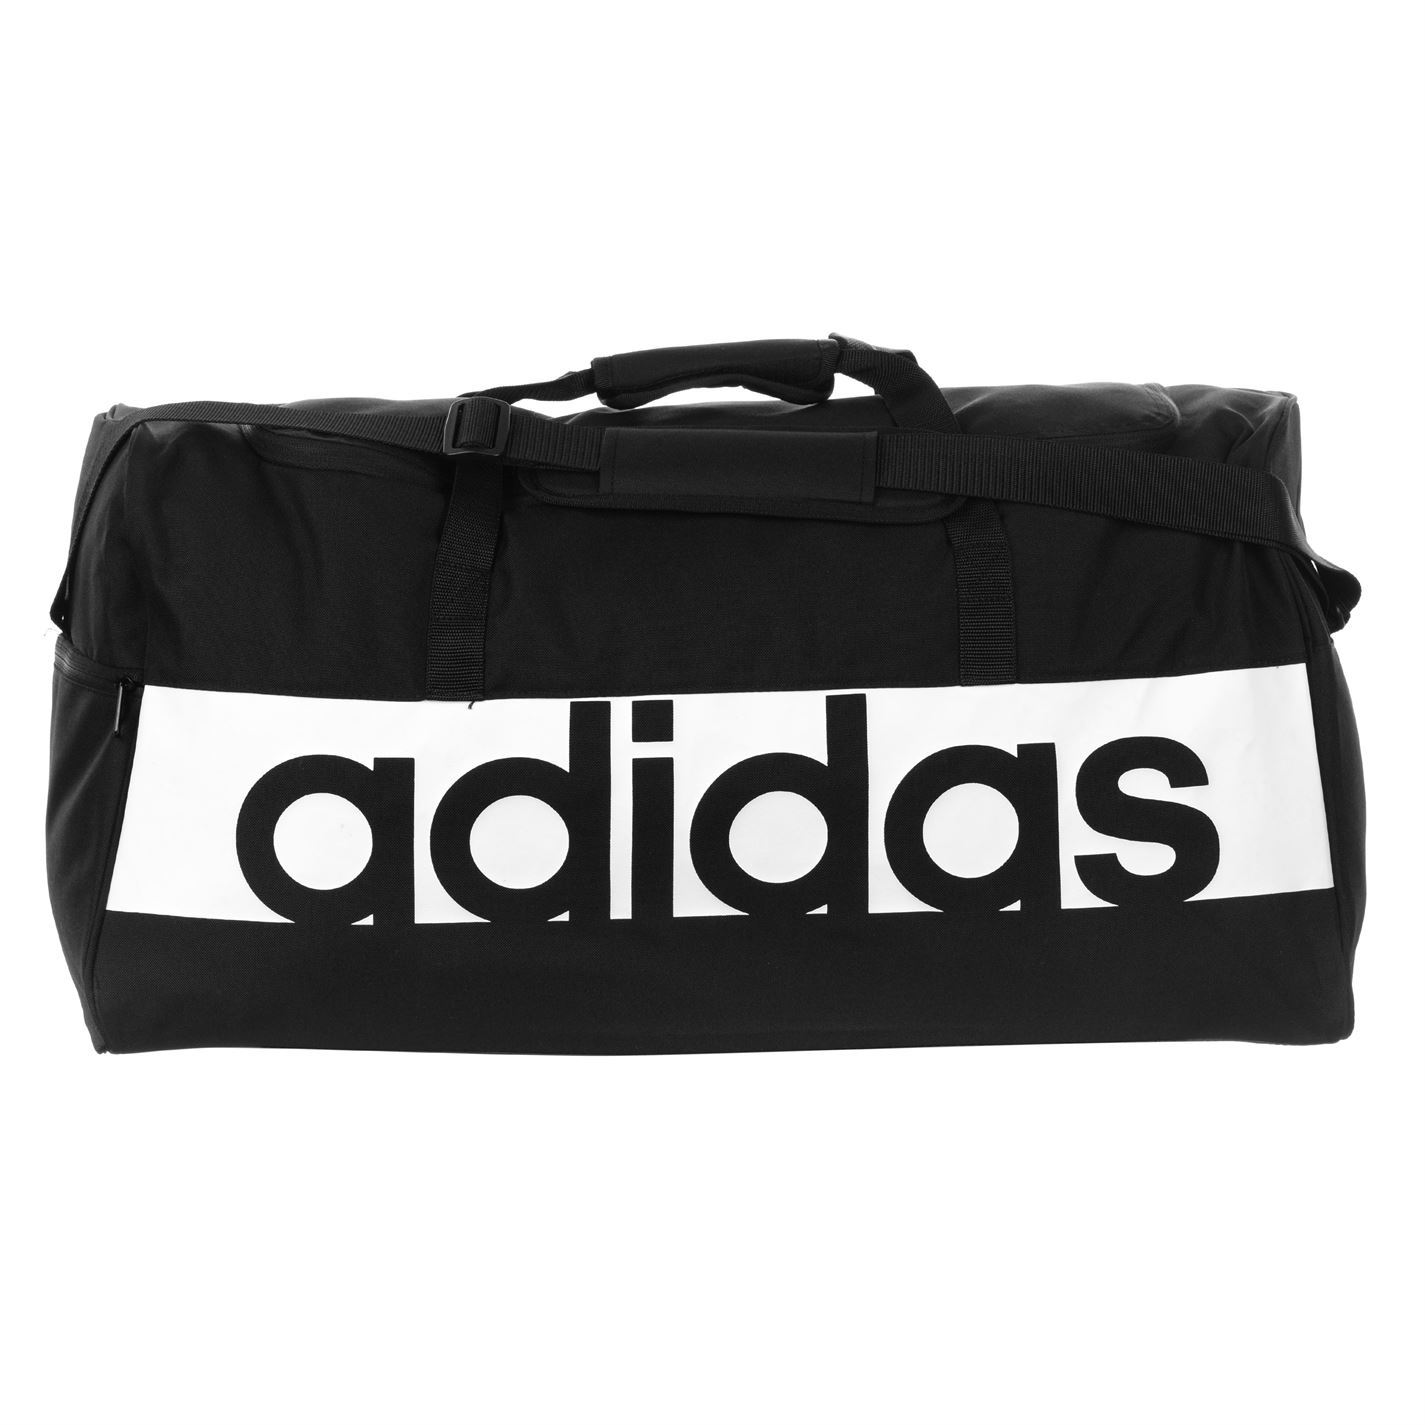 Details about adidas Linear Performance Duffel Bag Large BlackWhite Sports Gym Bag Holdall